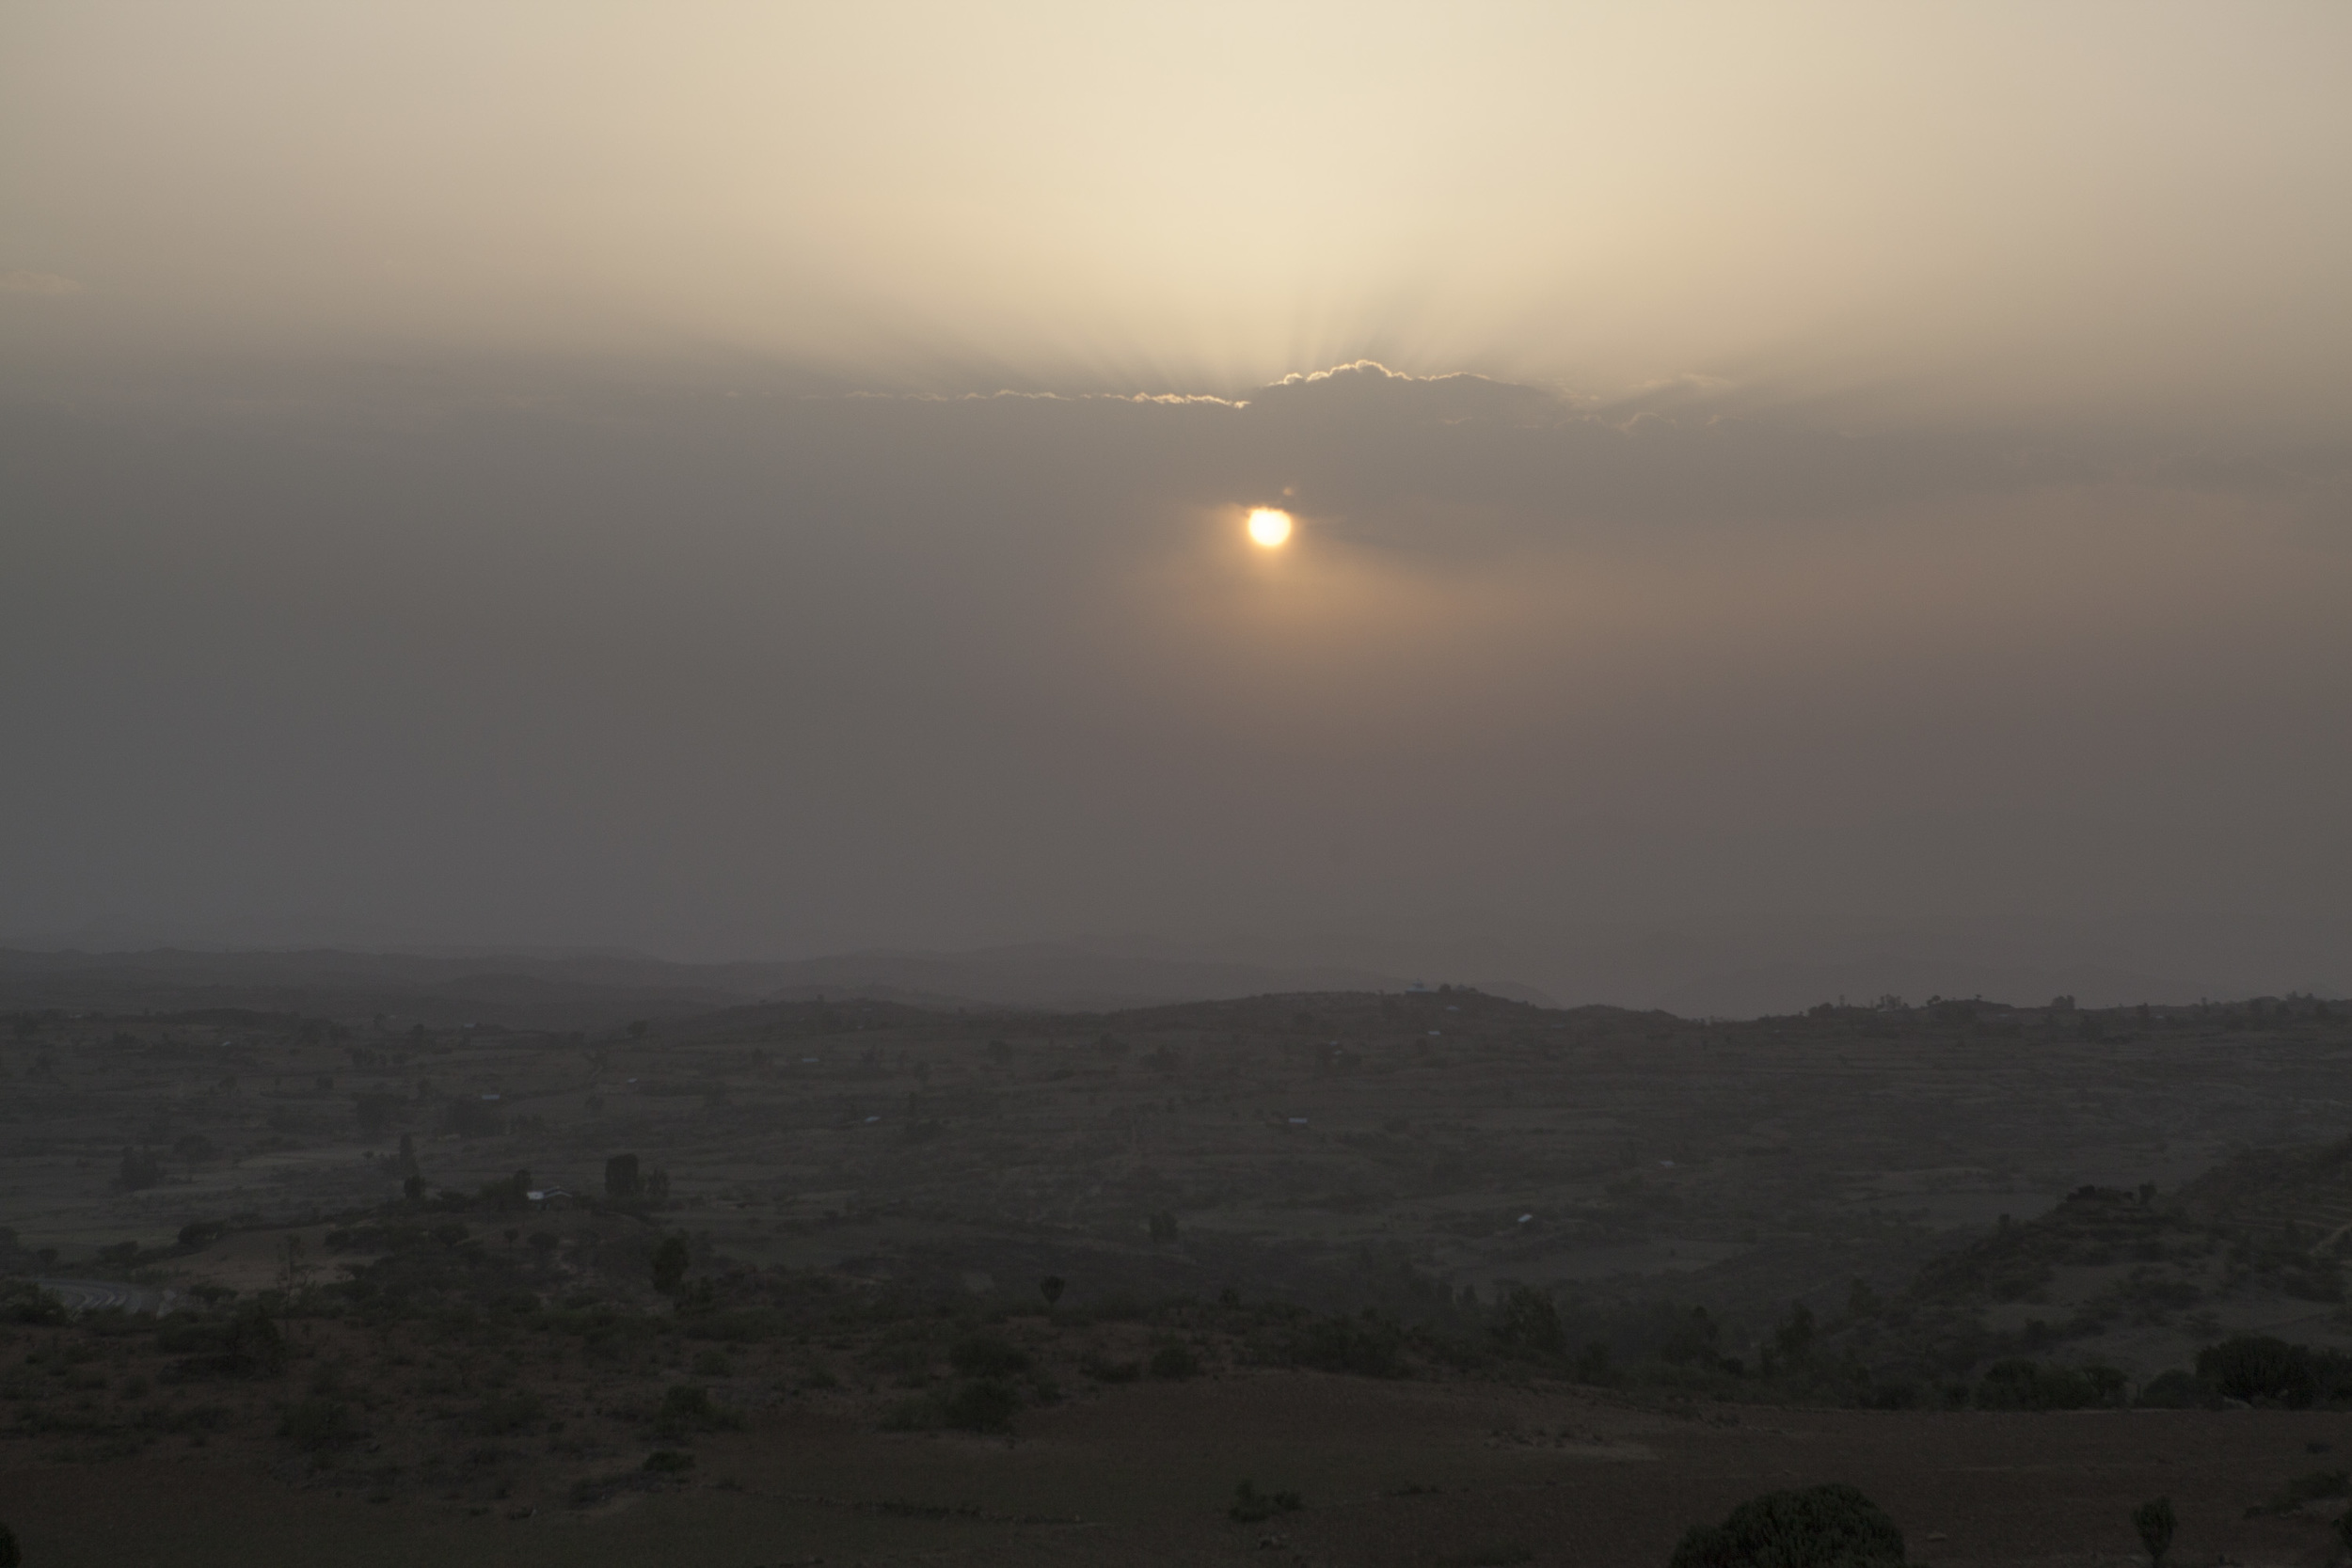 Obligatory sunset pic, a view from the Gheralta lodge where we stayed.